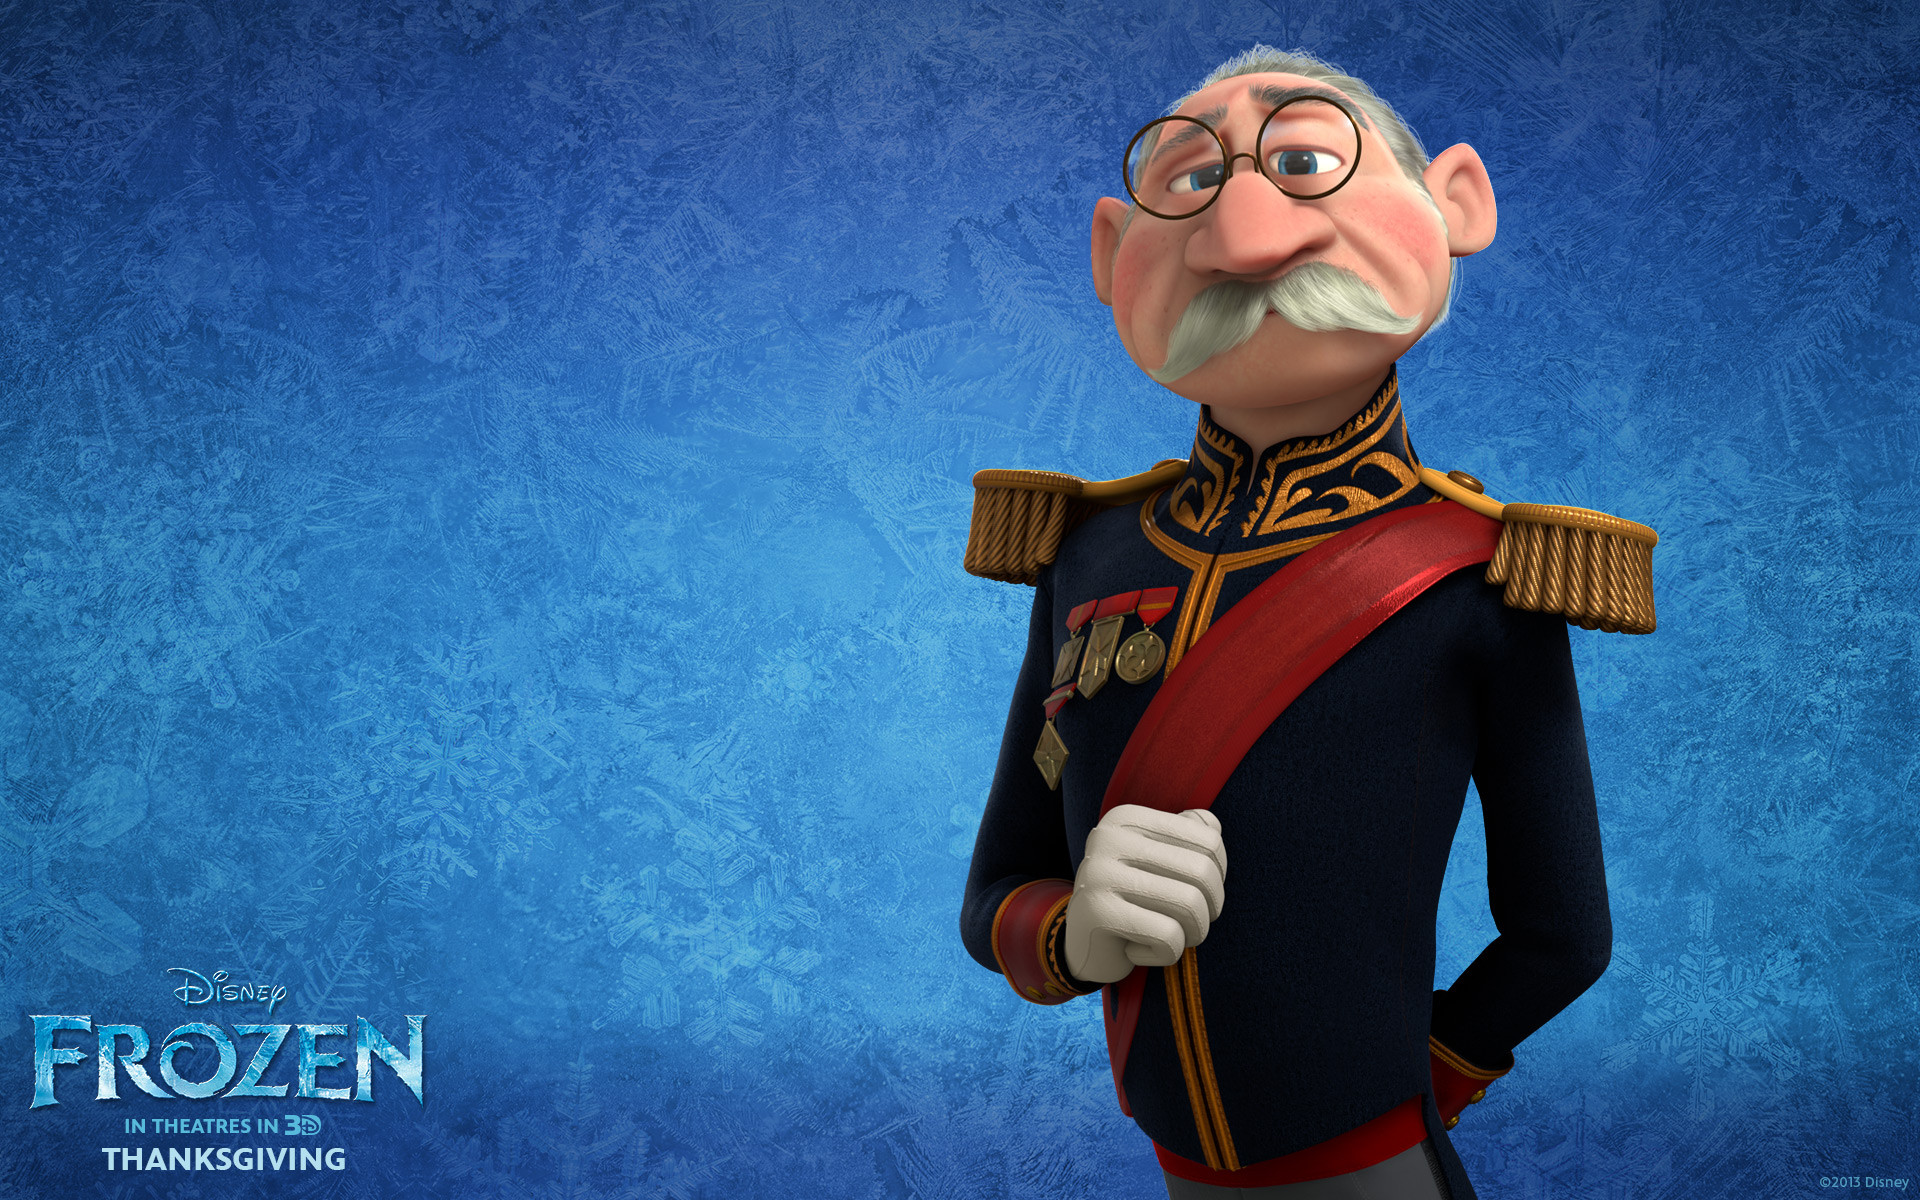 Duke of Weselton From Frozen wallpaper   Click picture for high 1920x1200